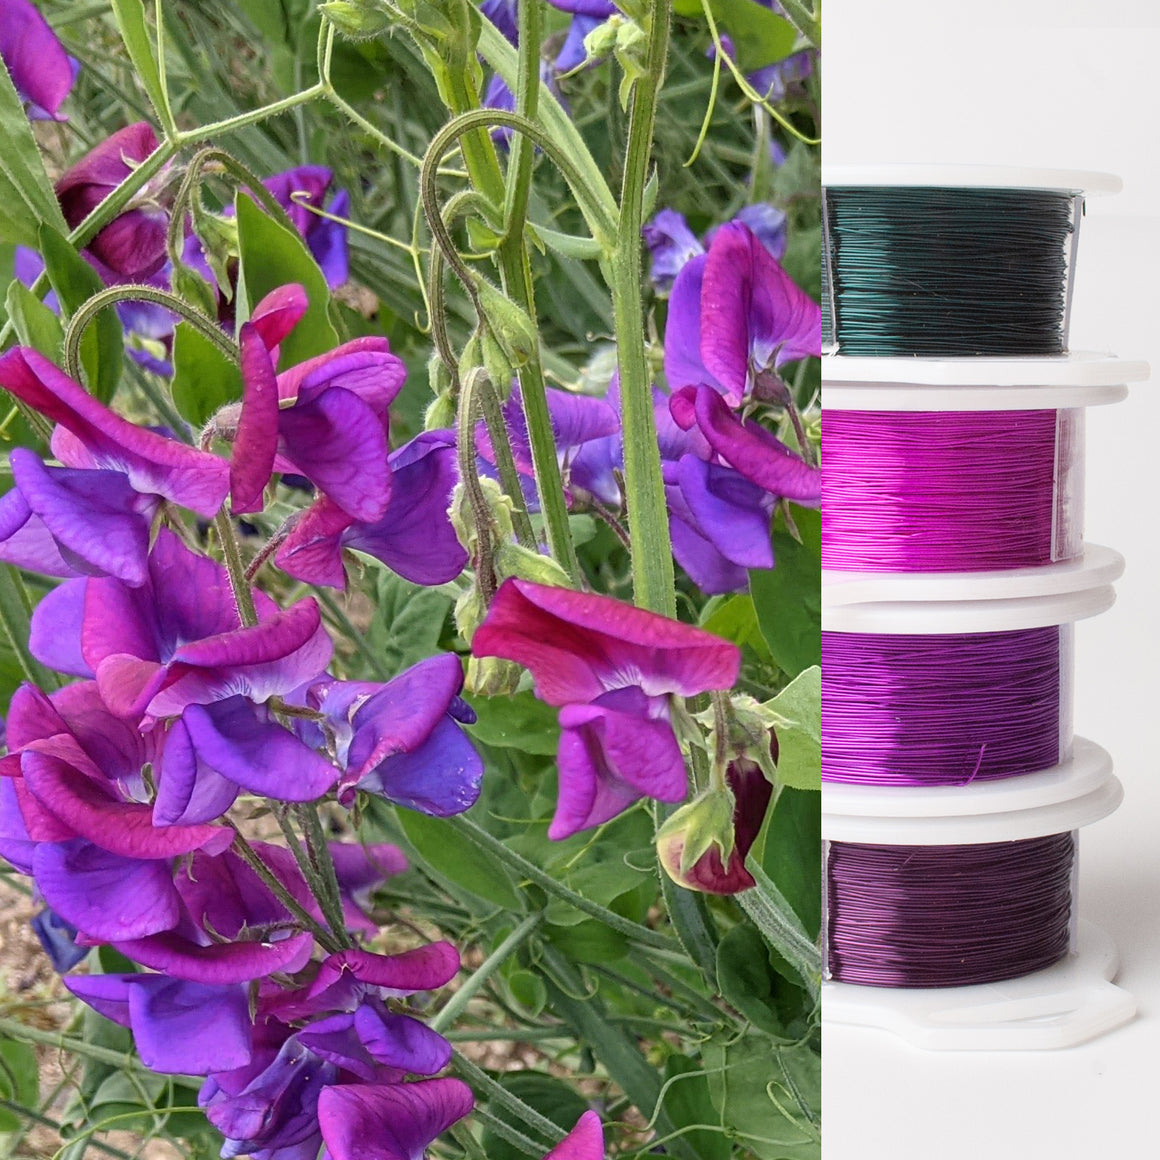 Jewelry making wire - Garden inspiration - purple sweet pea - 4 spools - YoolaDesign